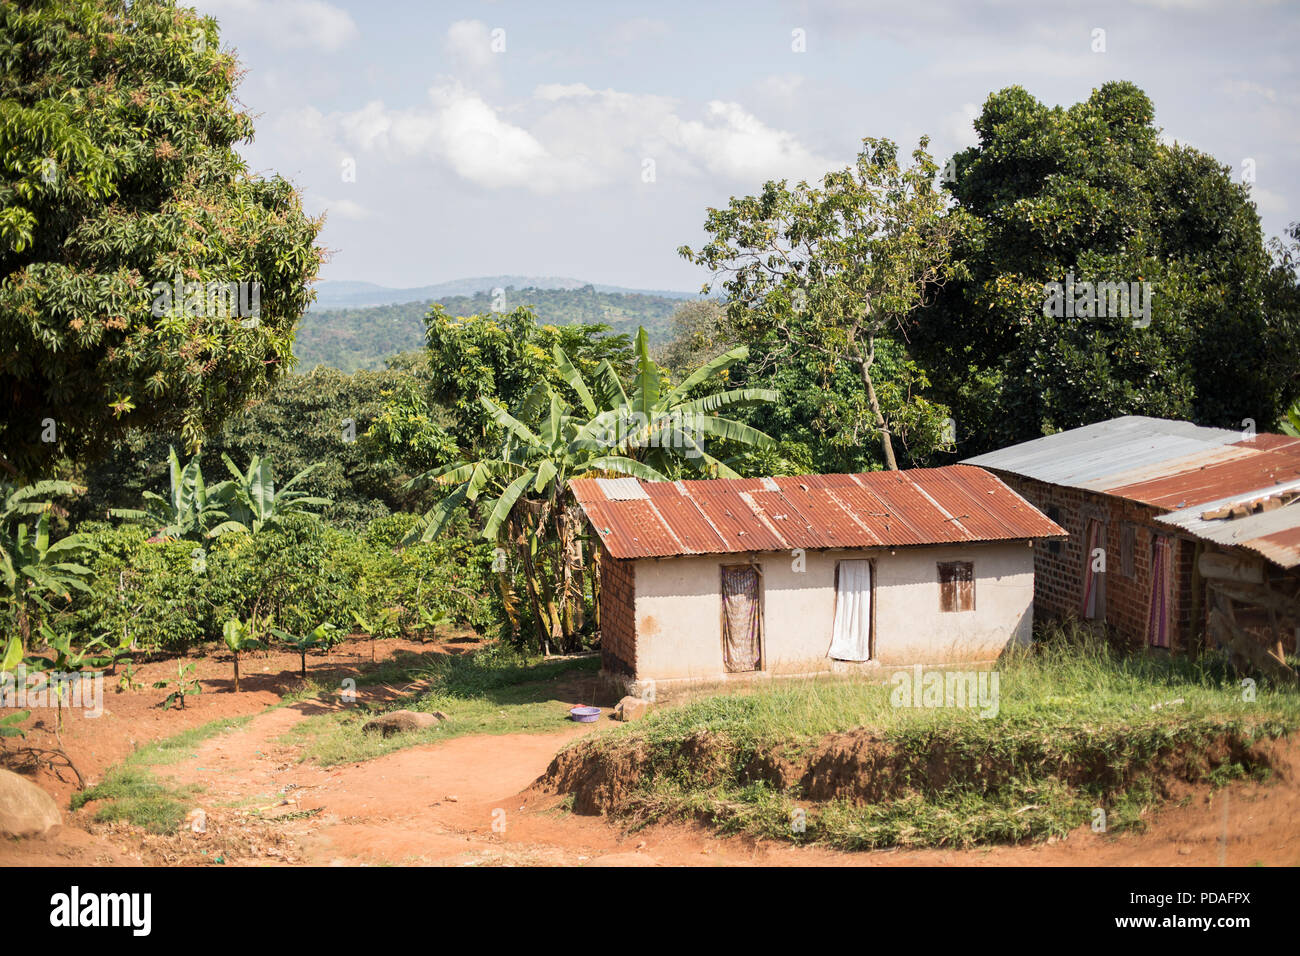 Shops and houses line the roadside of a small town in rural Mukono District, Uganda. - Stock Image